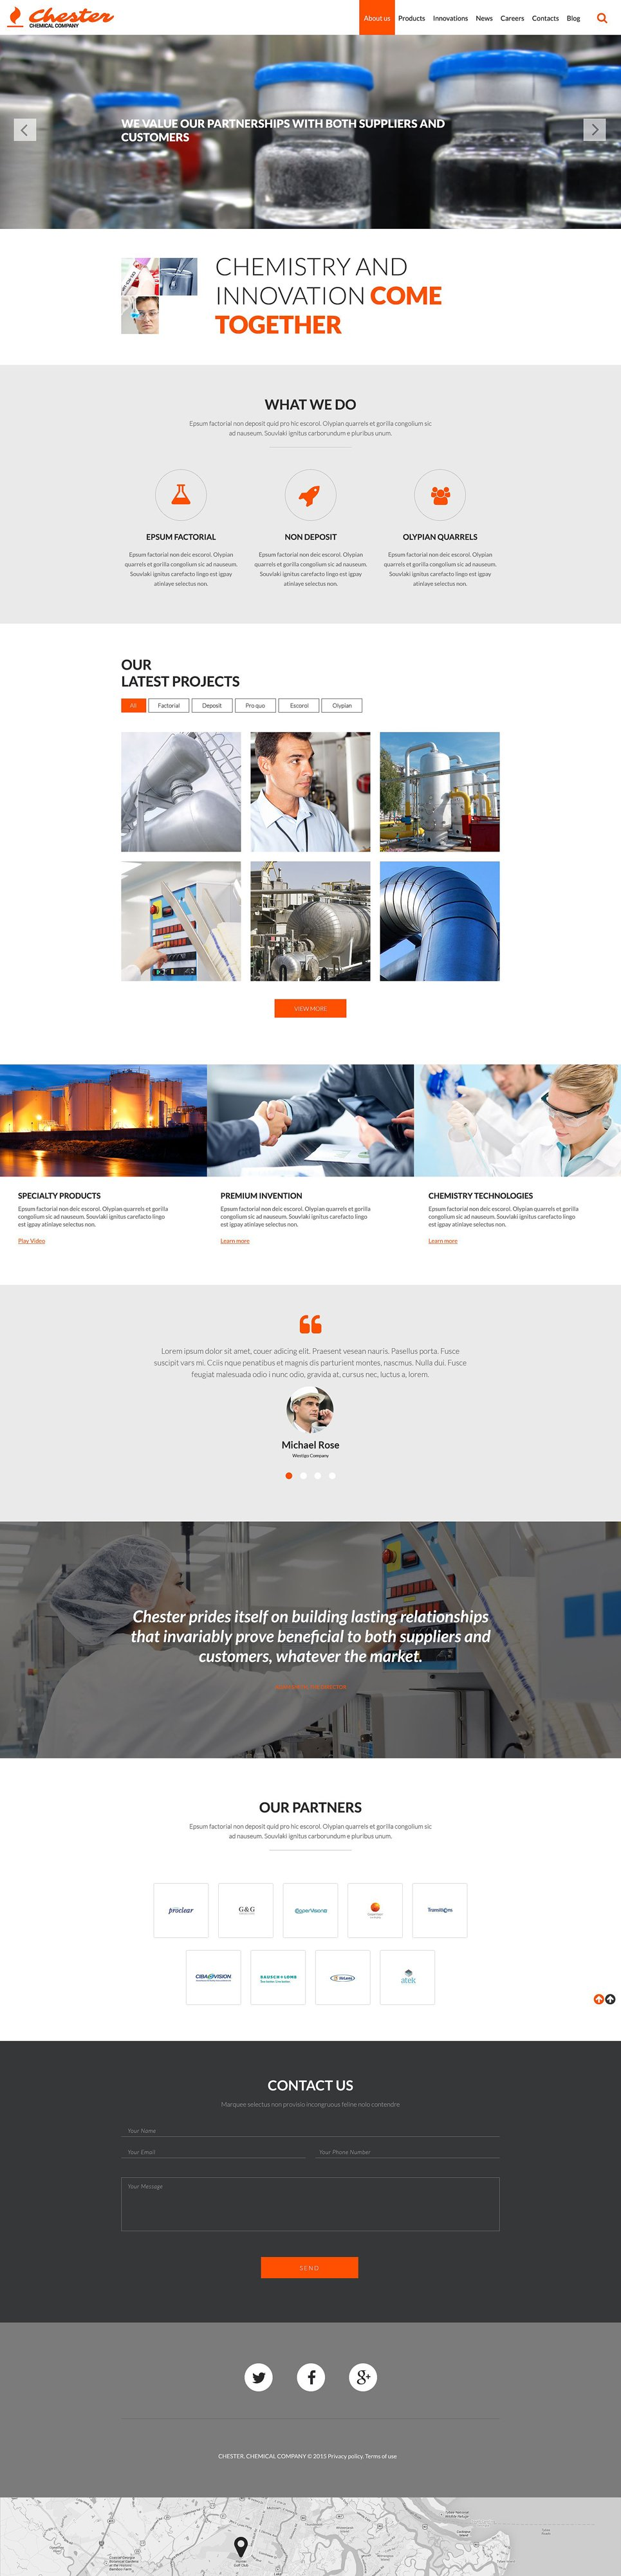 Chemical Company template illustration image